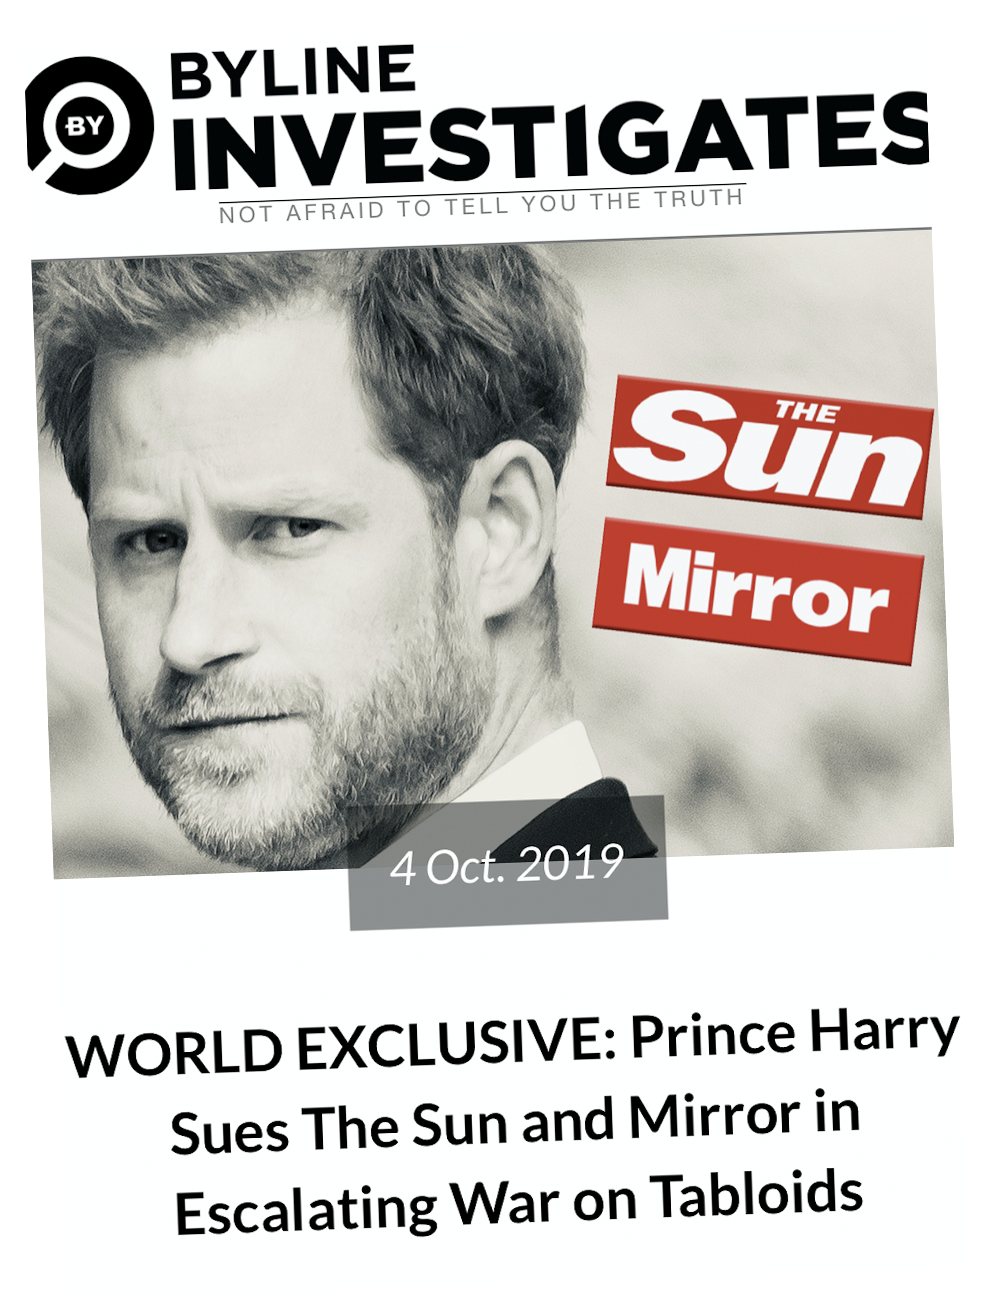 Exclusive: how  Byline Investigates  reported on Prince Harry's legal action